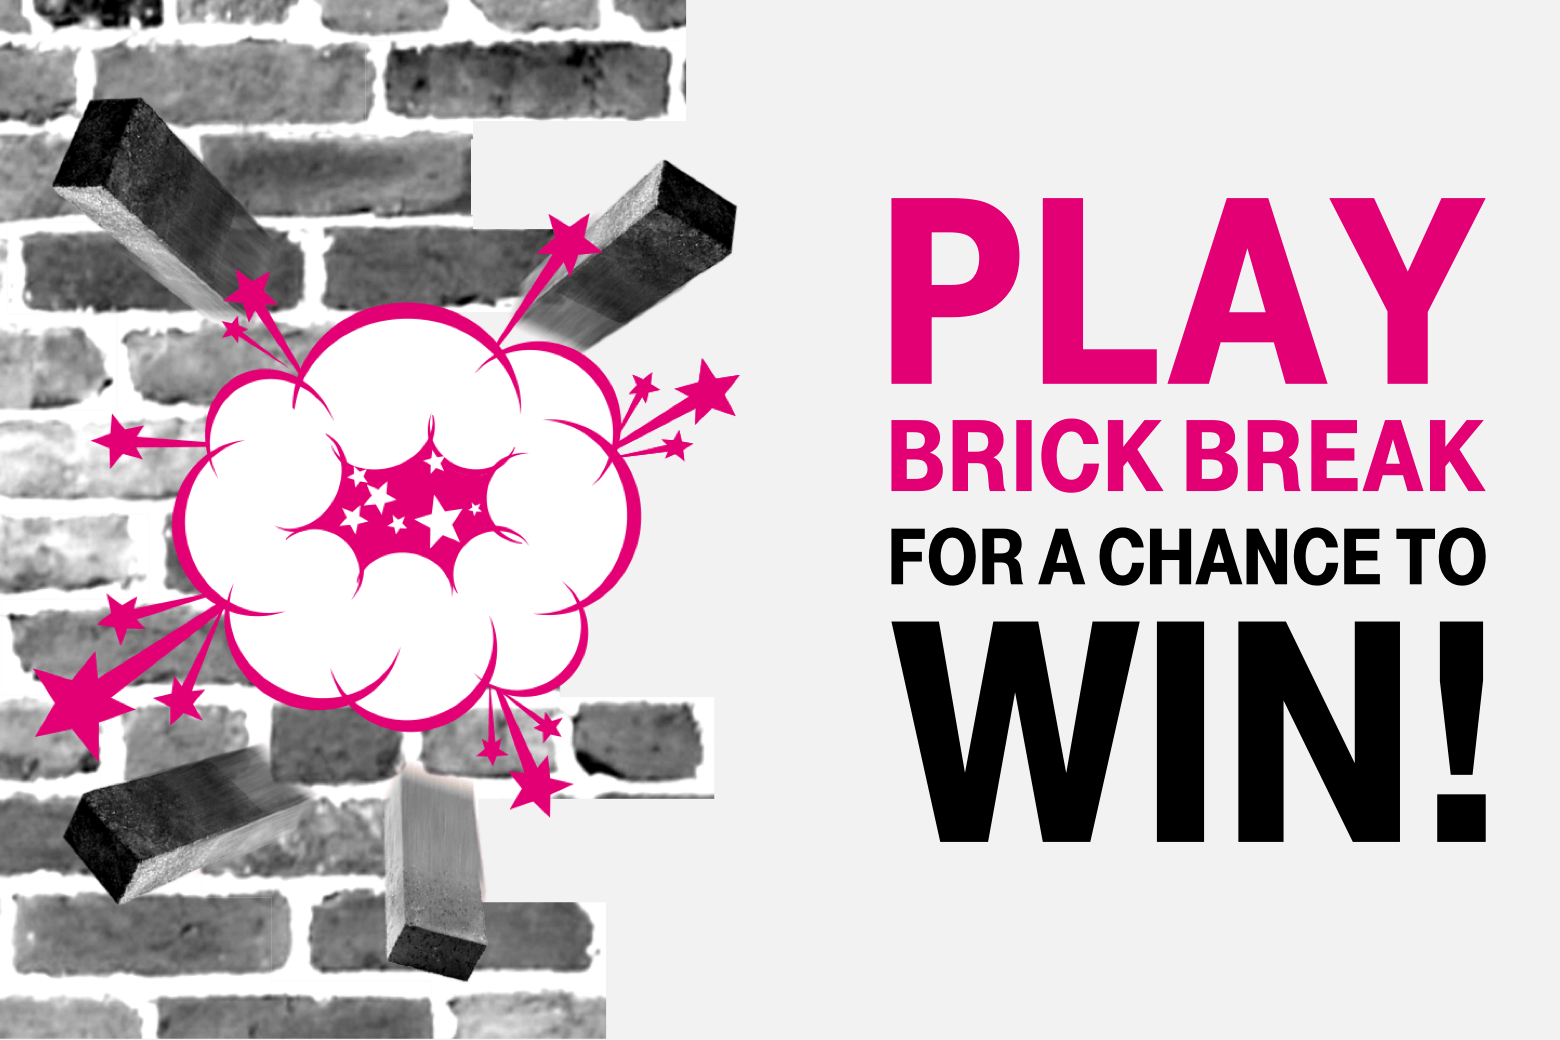 Play Brick break for a chance to win!